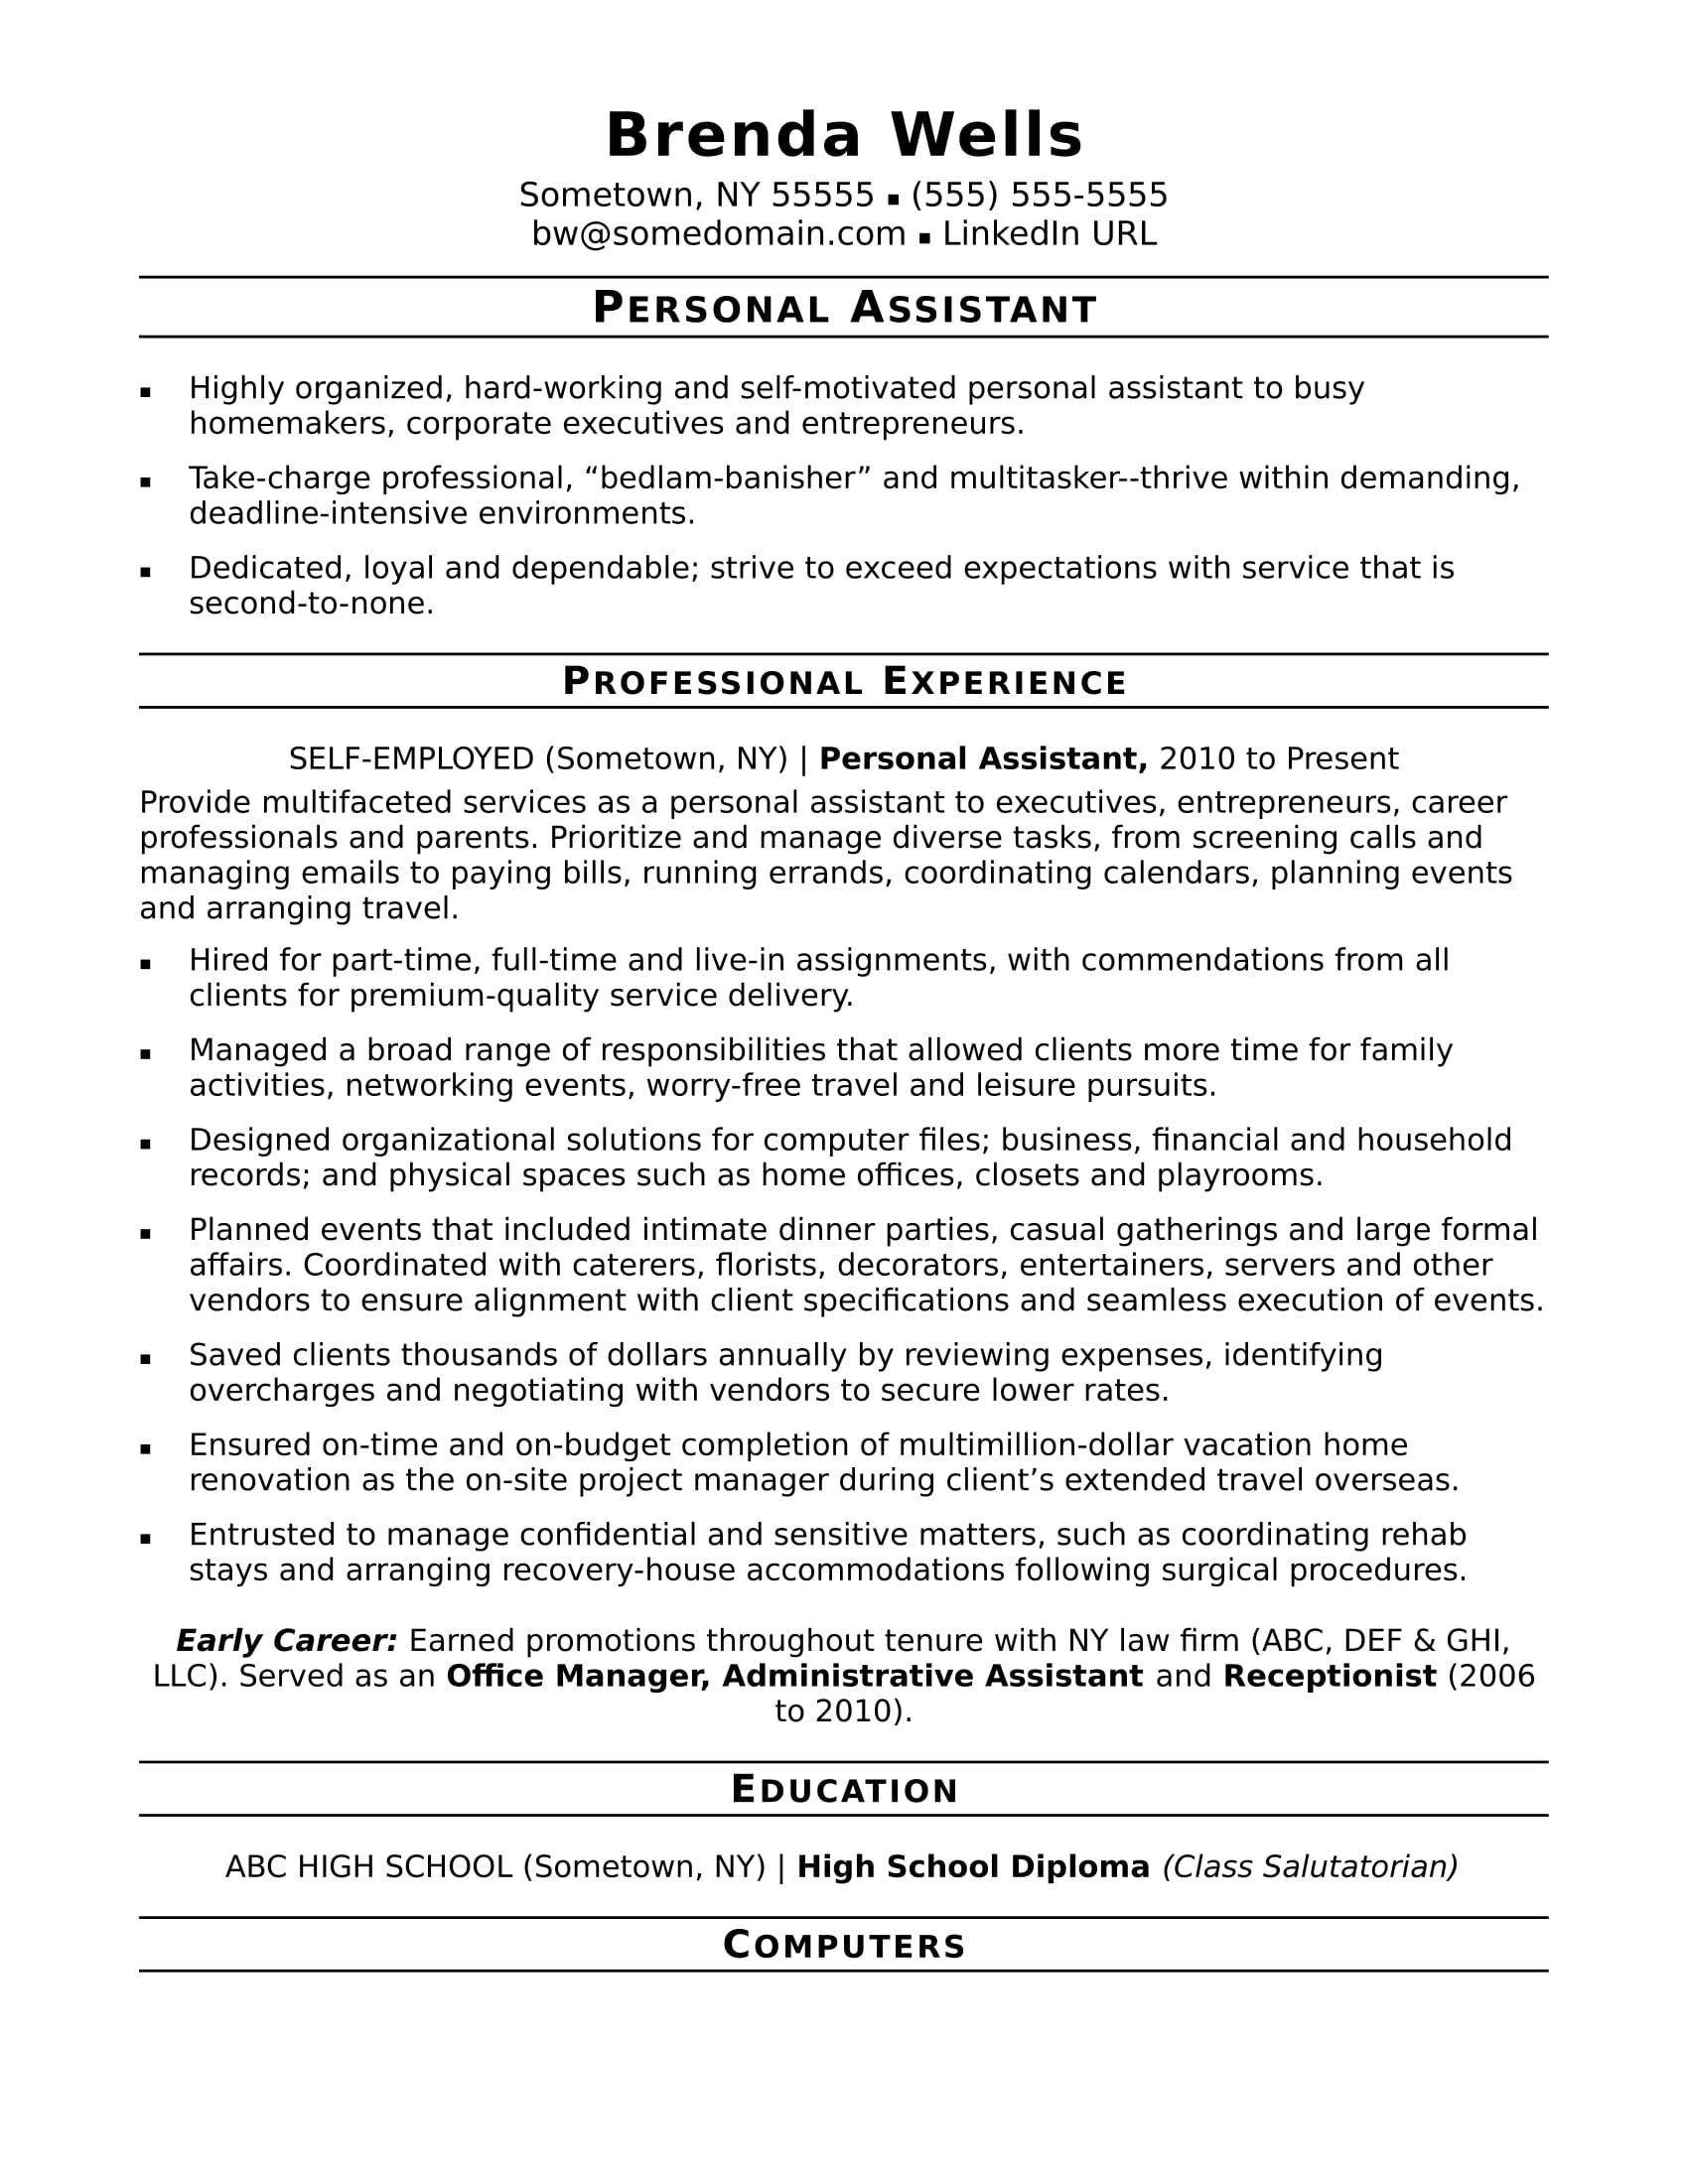 personal assistant resume sample monster self motivated examples reconciliation basic Resume Self Motivated Resume Examples